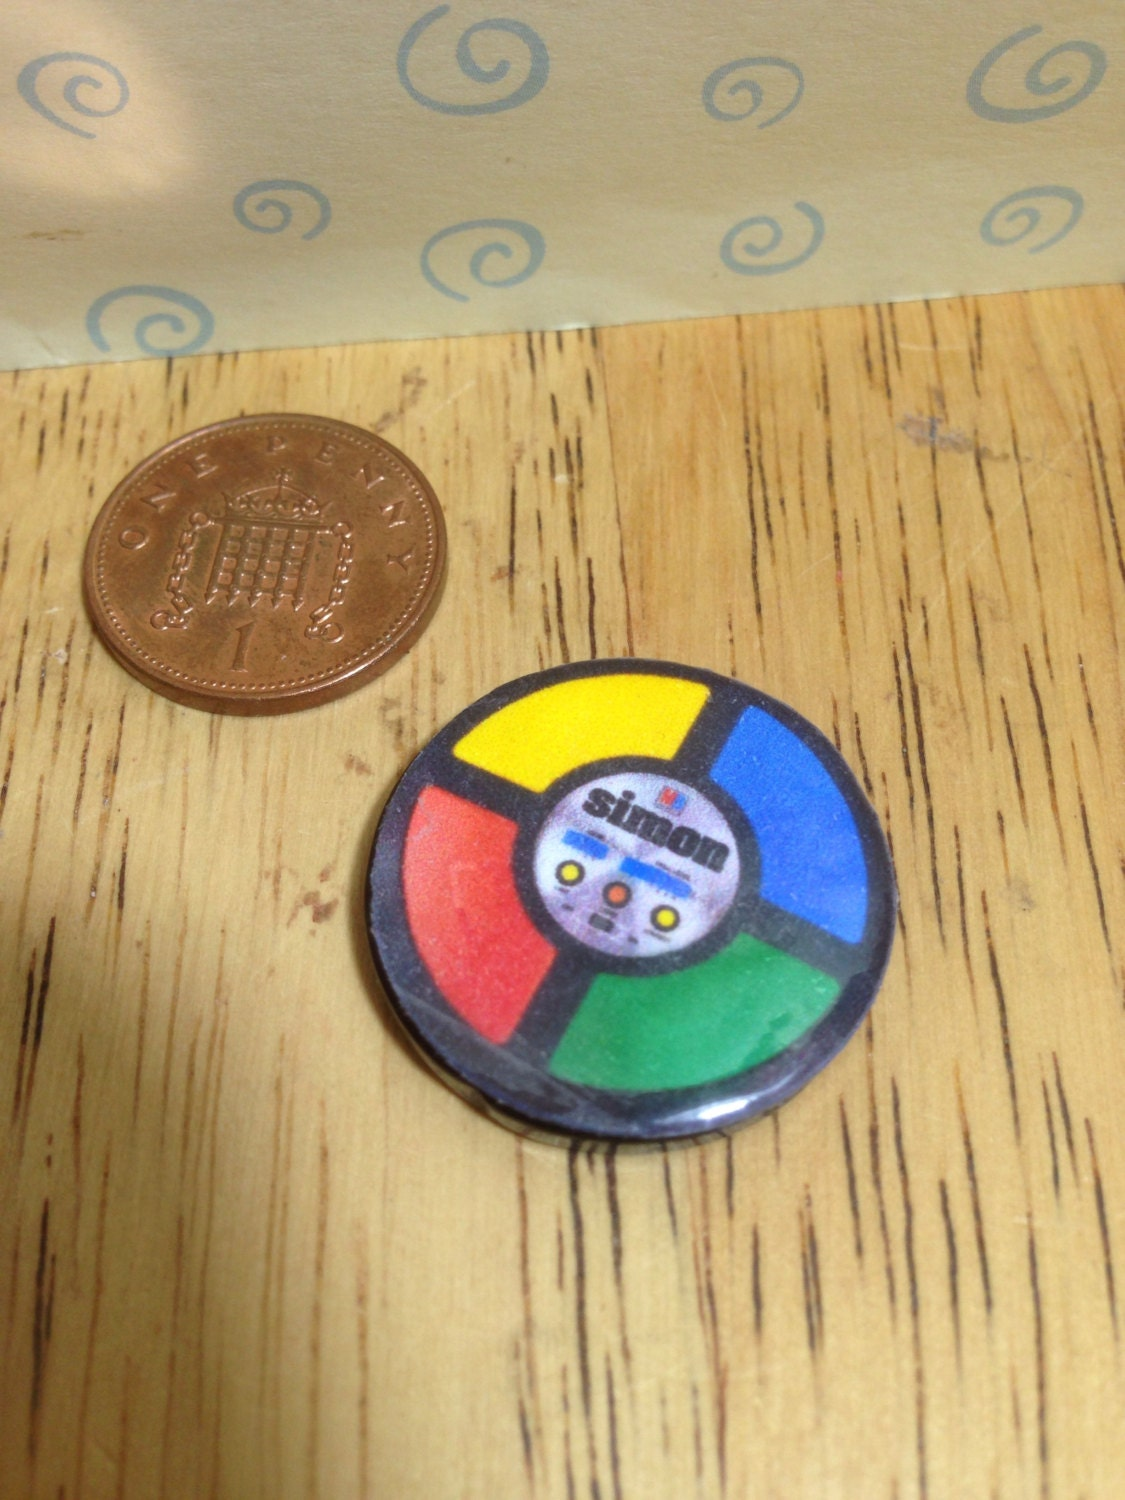 Hand made Dolls house Miniature replica electronic simon game 112 scale